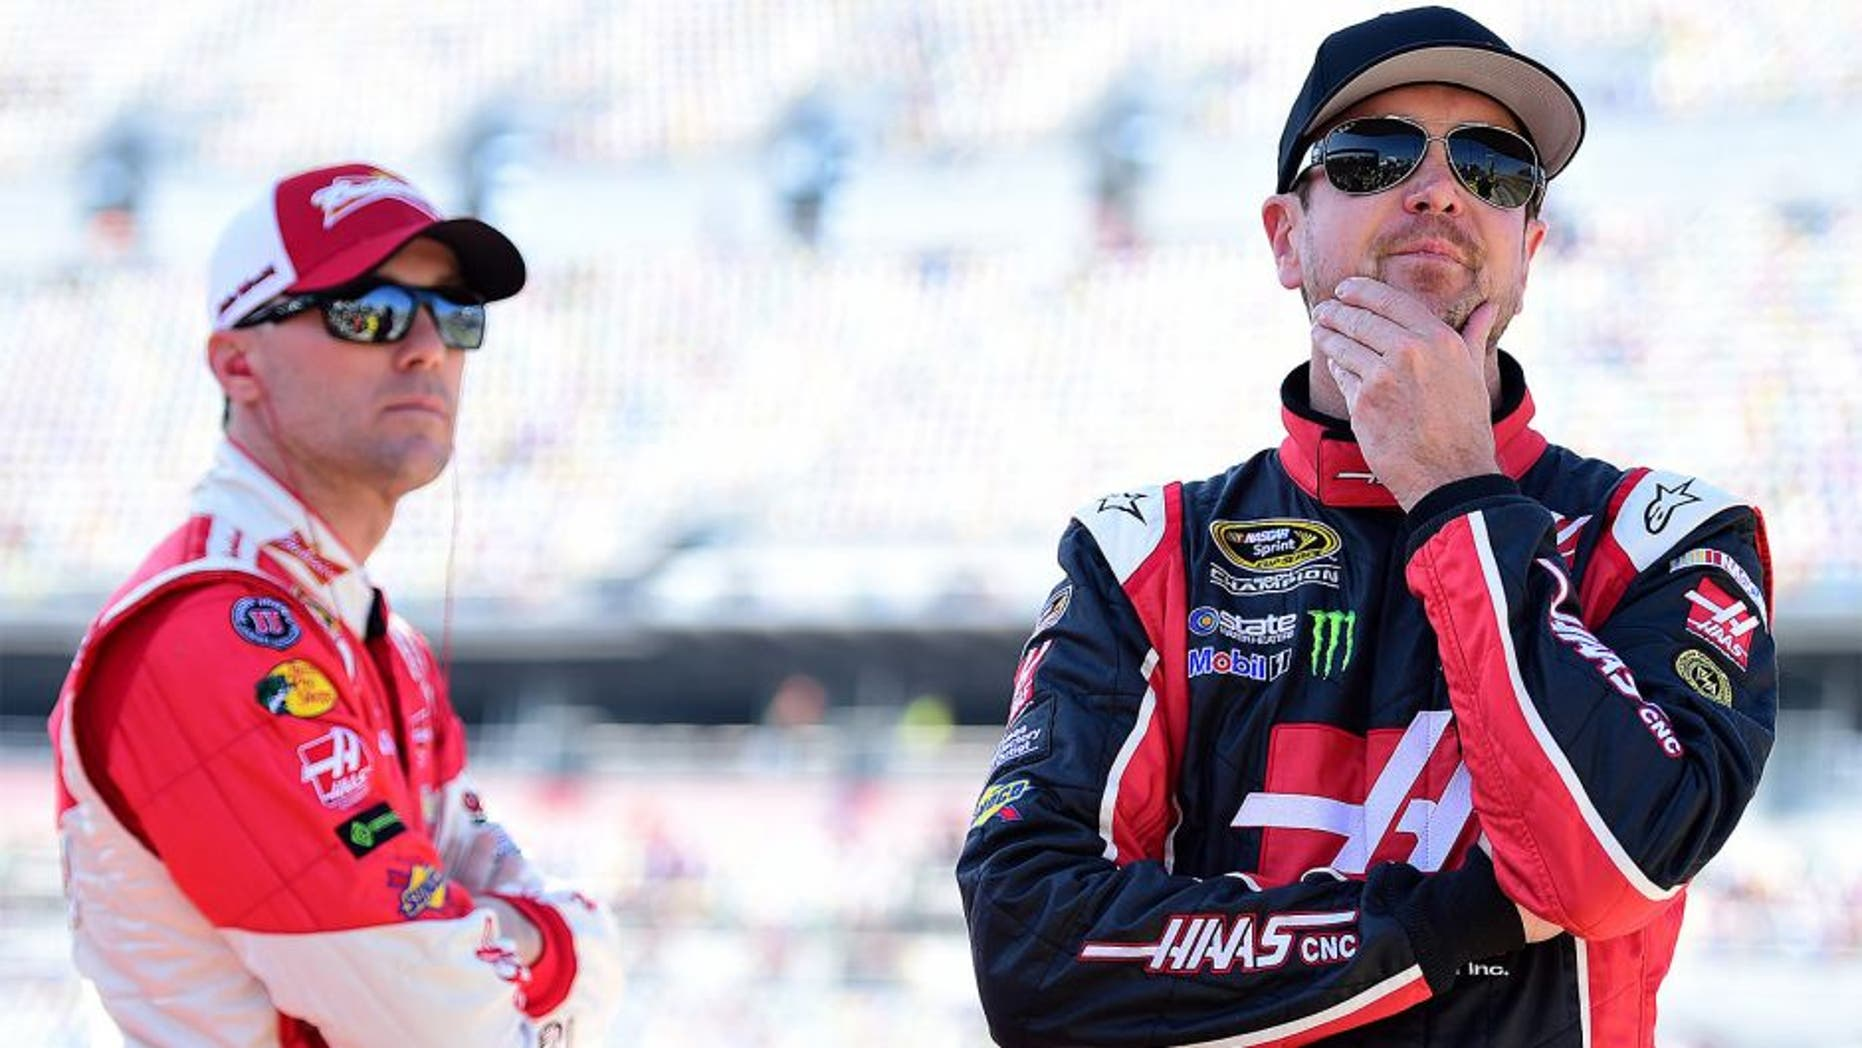 DAYTONA BEACH, FL - FEBRUARY 15: Kevin Harvick, driver of the #4 Budweiser/Jimmy John's Chevrolet, and Kurt Busch, driver of the #41 Haas Automation Chevrolet, stands on the grid during qualifying for the 57th Annual Daytona 500 at Daytona International Speedway on February 15, 2015 in Daytona Beach, Florida. (Photo by Robert Laberge/NASCAR via Getty Images)